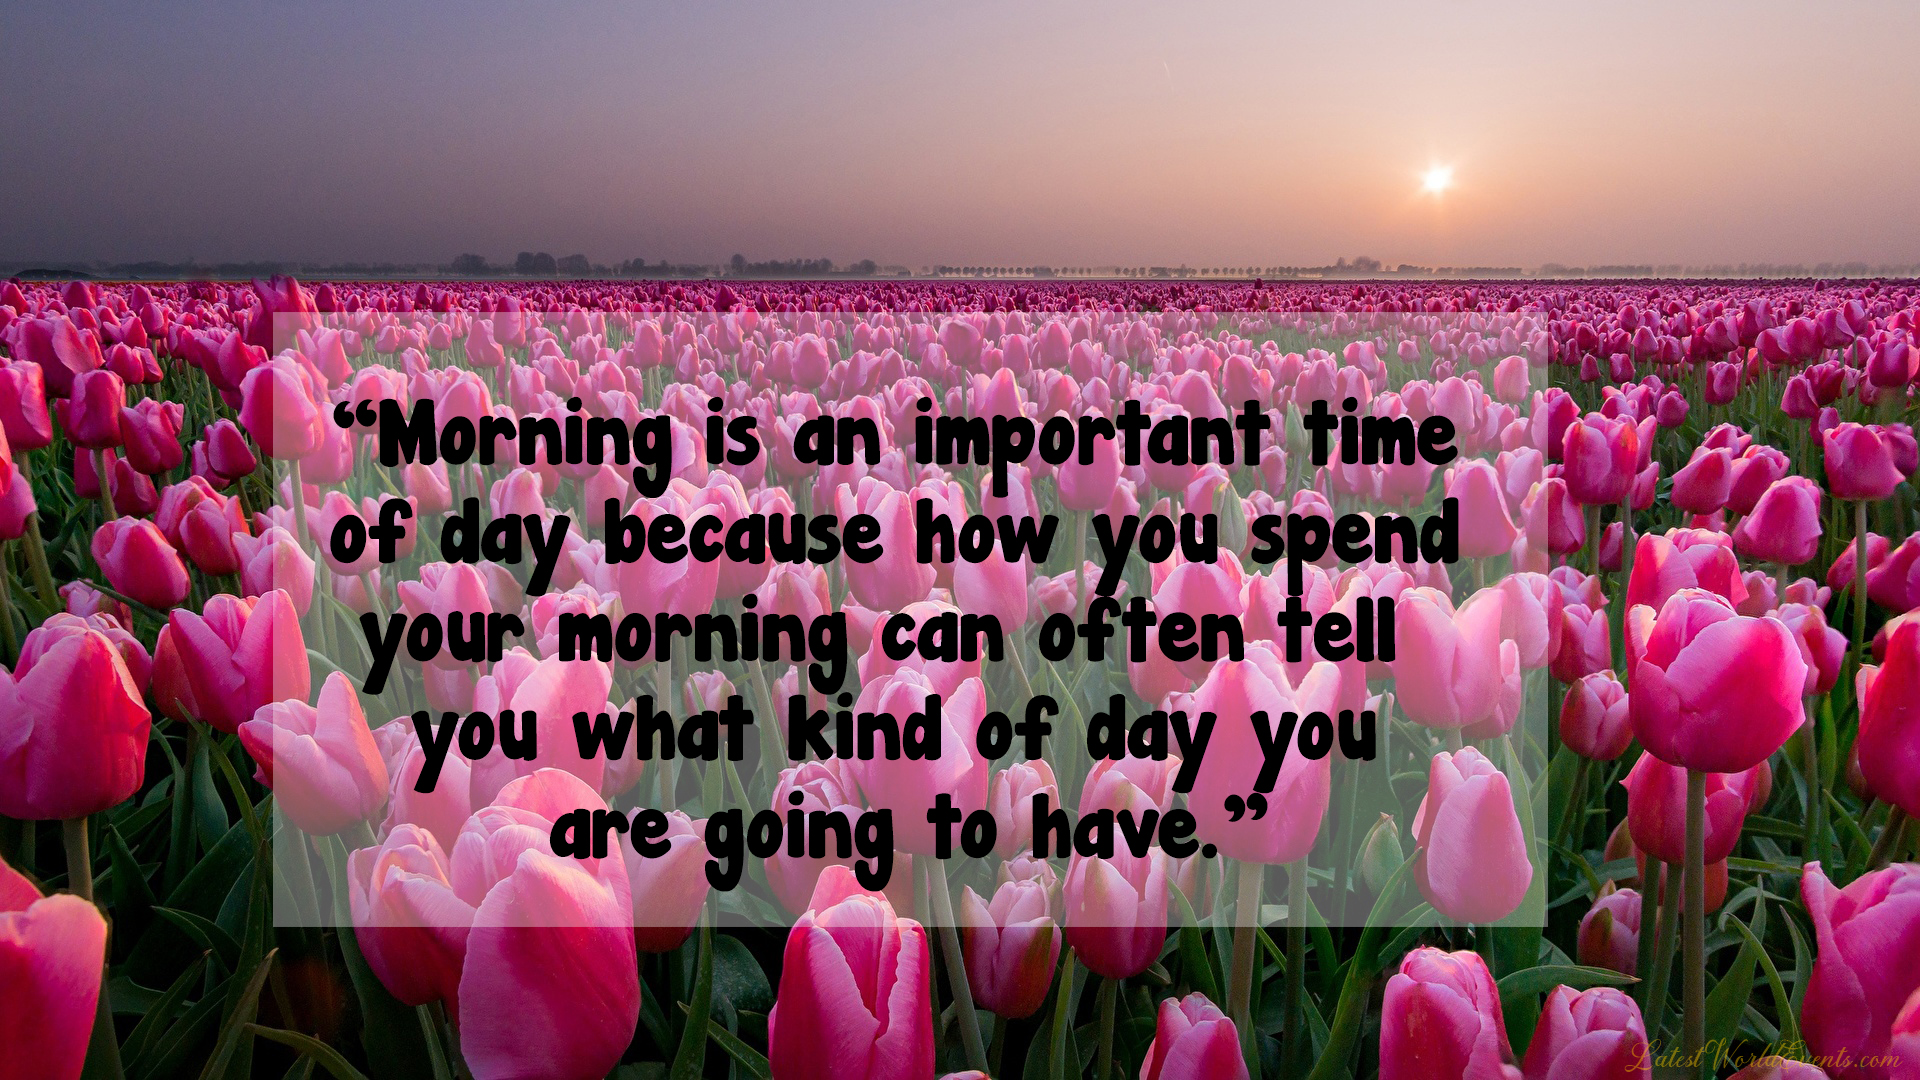 Cool-good-morning-have-a-nice-day-quotes